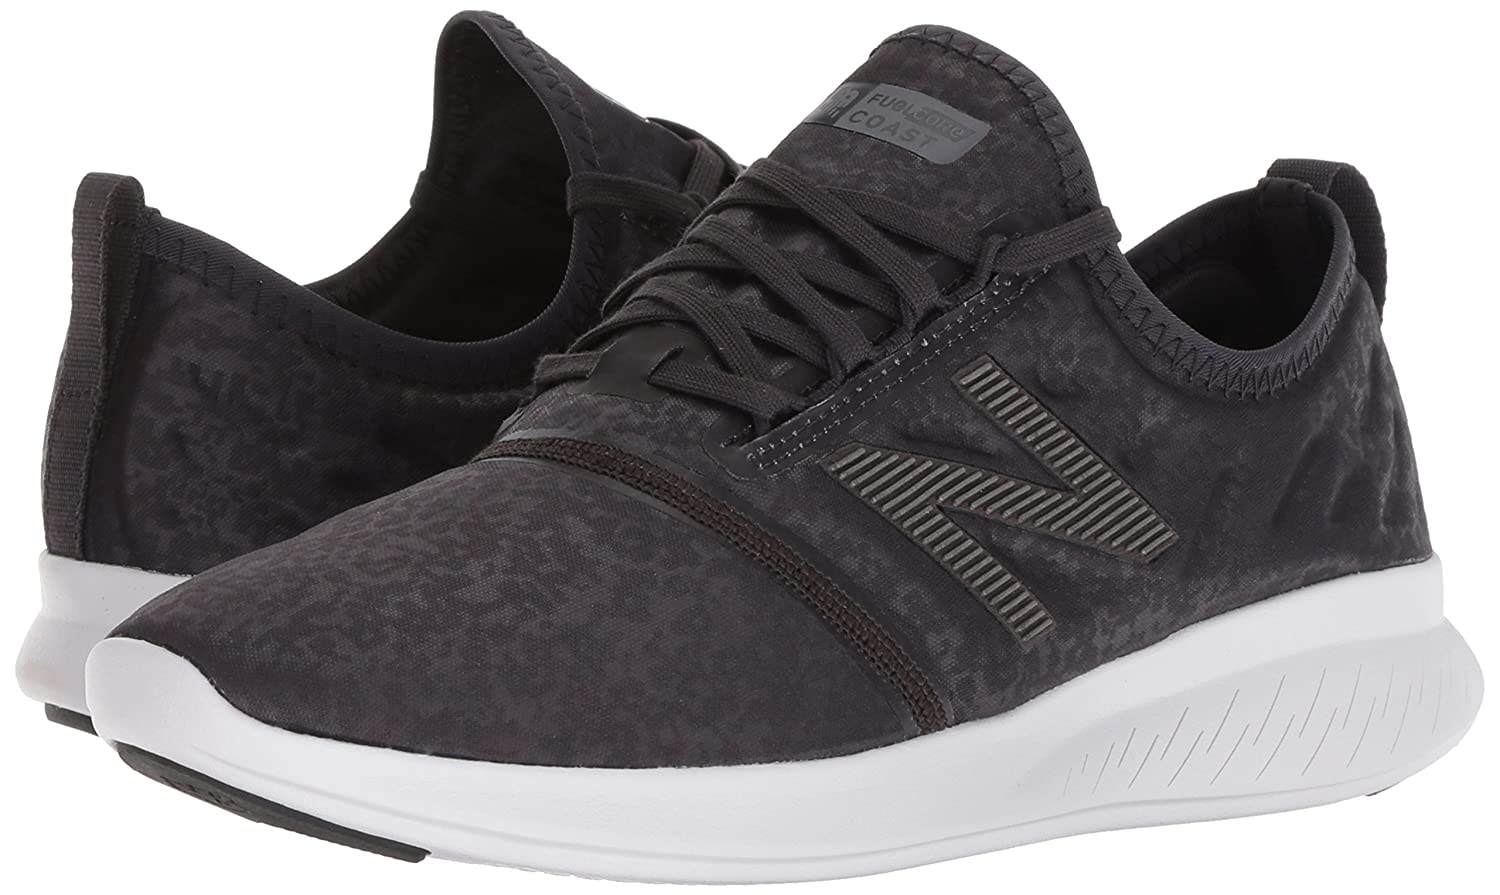 New Balance Women's Shoe Coast V4 FuelCore Running Shoe Women's B075R7PN7B 10.5 B(M) US|Dark Grey 9aac46